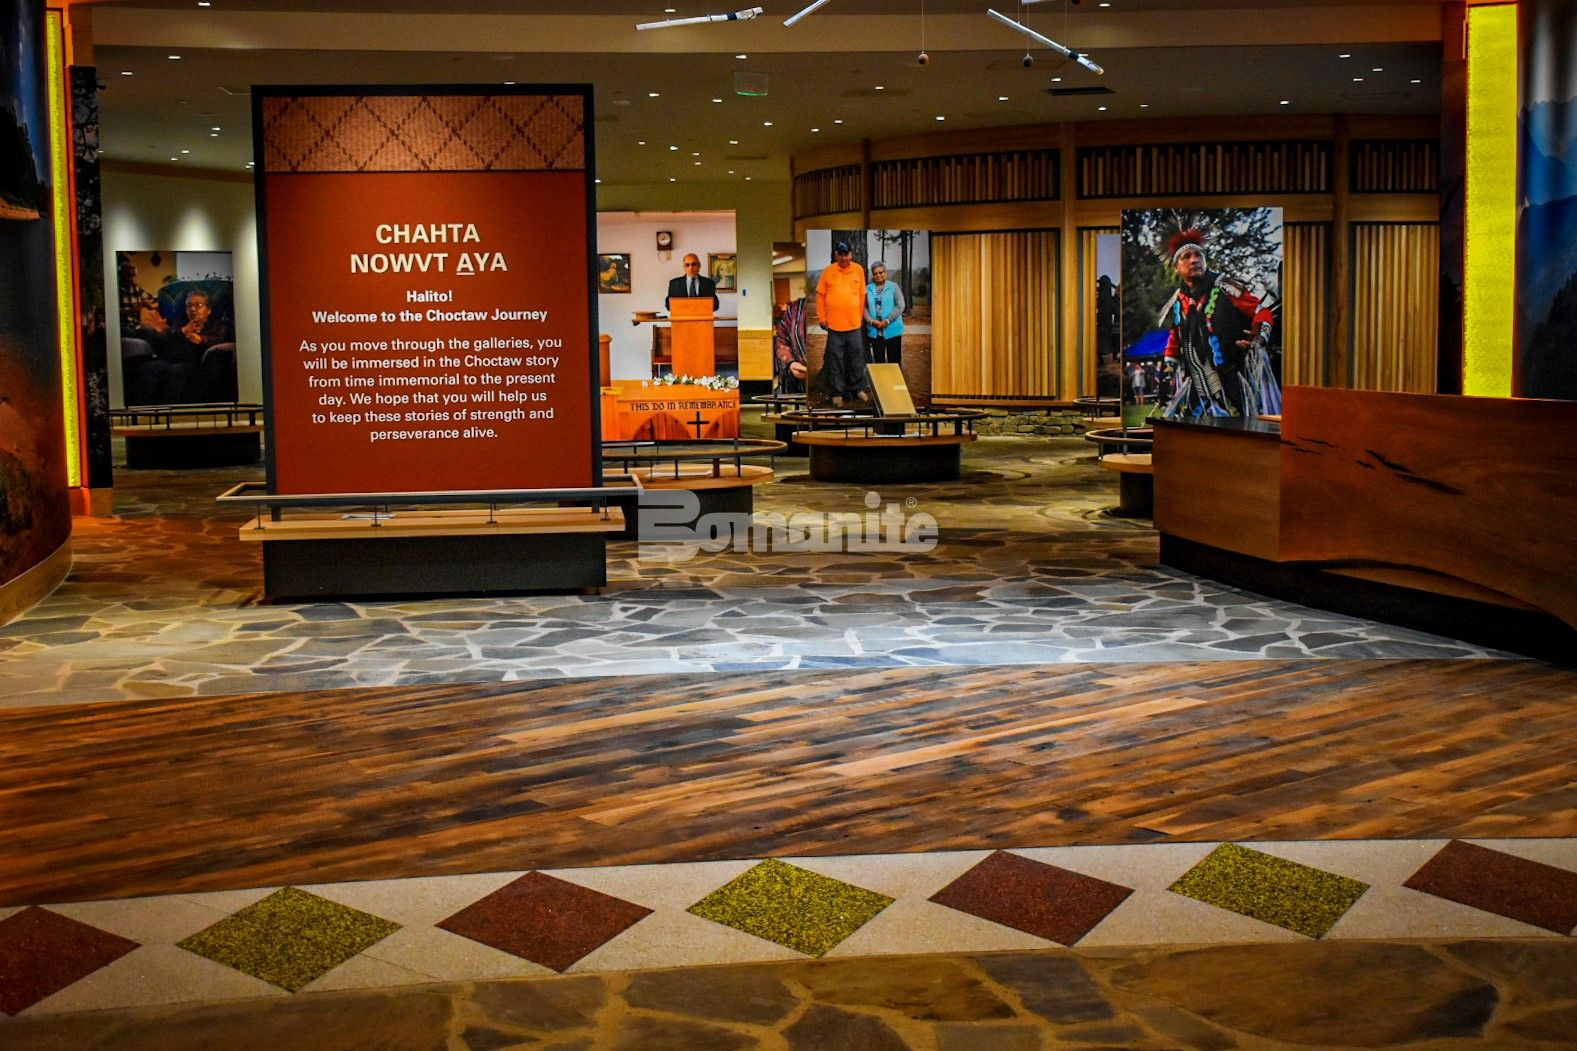 The Choctaw Cultural Center located in Durant Oklahoma chose the Bomanite Revealed Exposed Aggregate System for the interior entrance flooring to compliment other flooring material and create a traditional Choctaw design